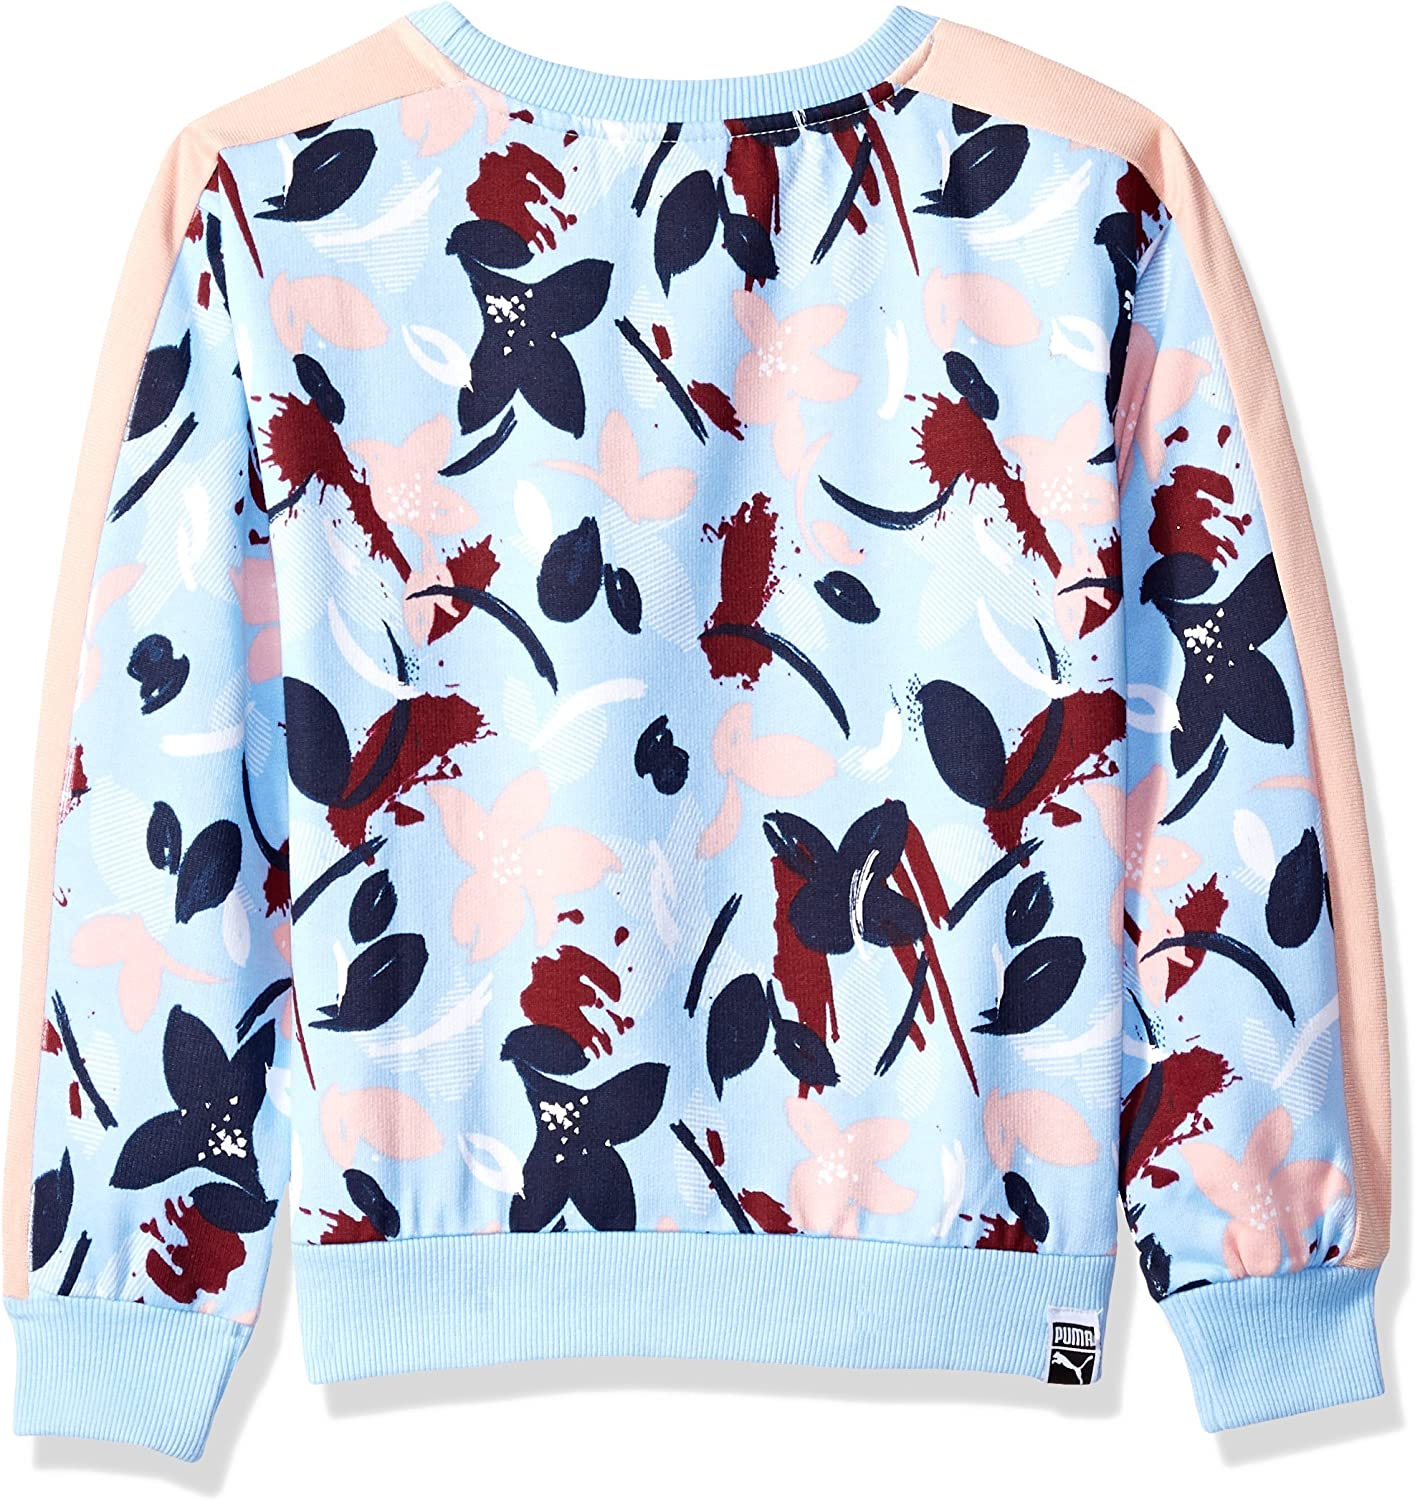 DTMN7 Skeleton Cute Printed O-Neck Sweatshirt For Girl Spring Autumn Winter